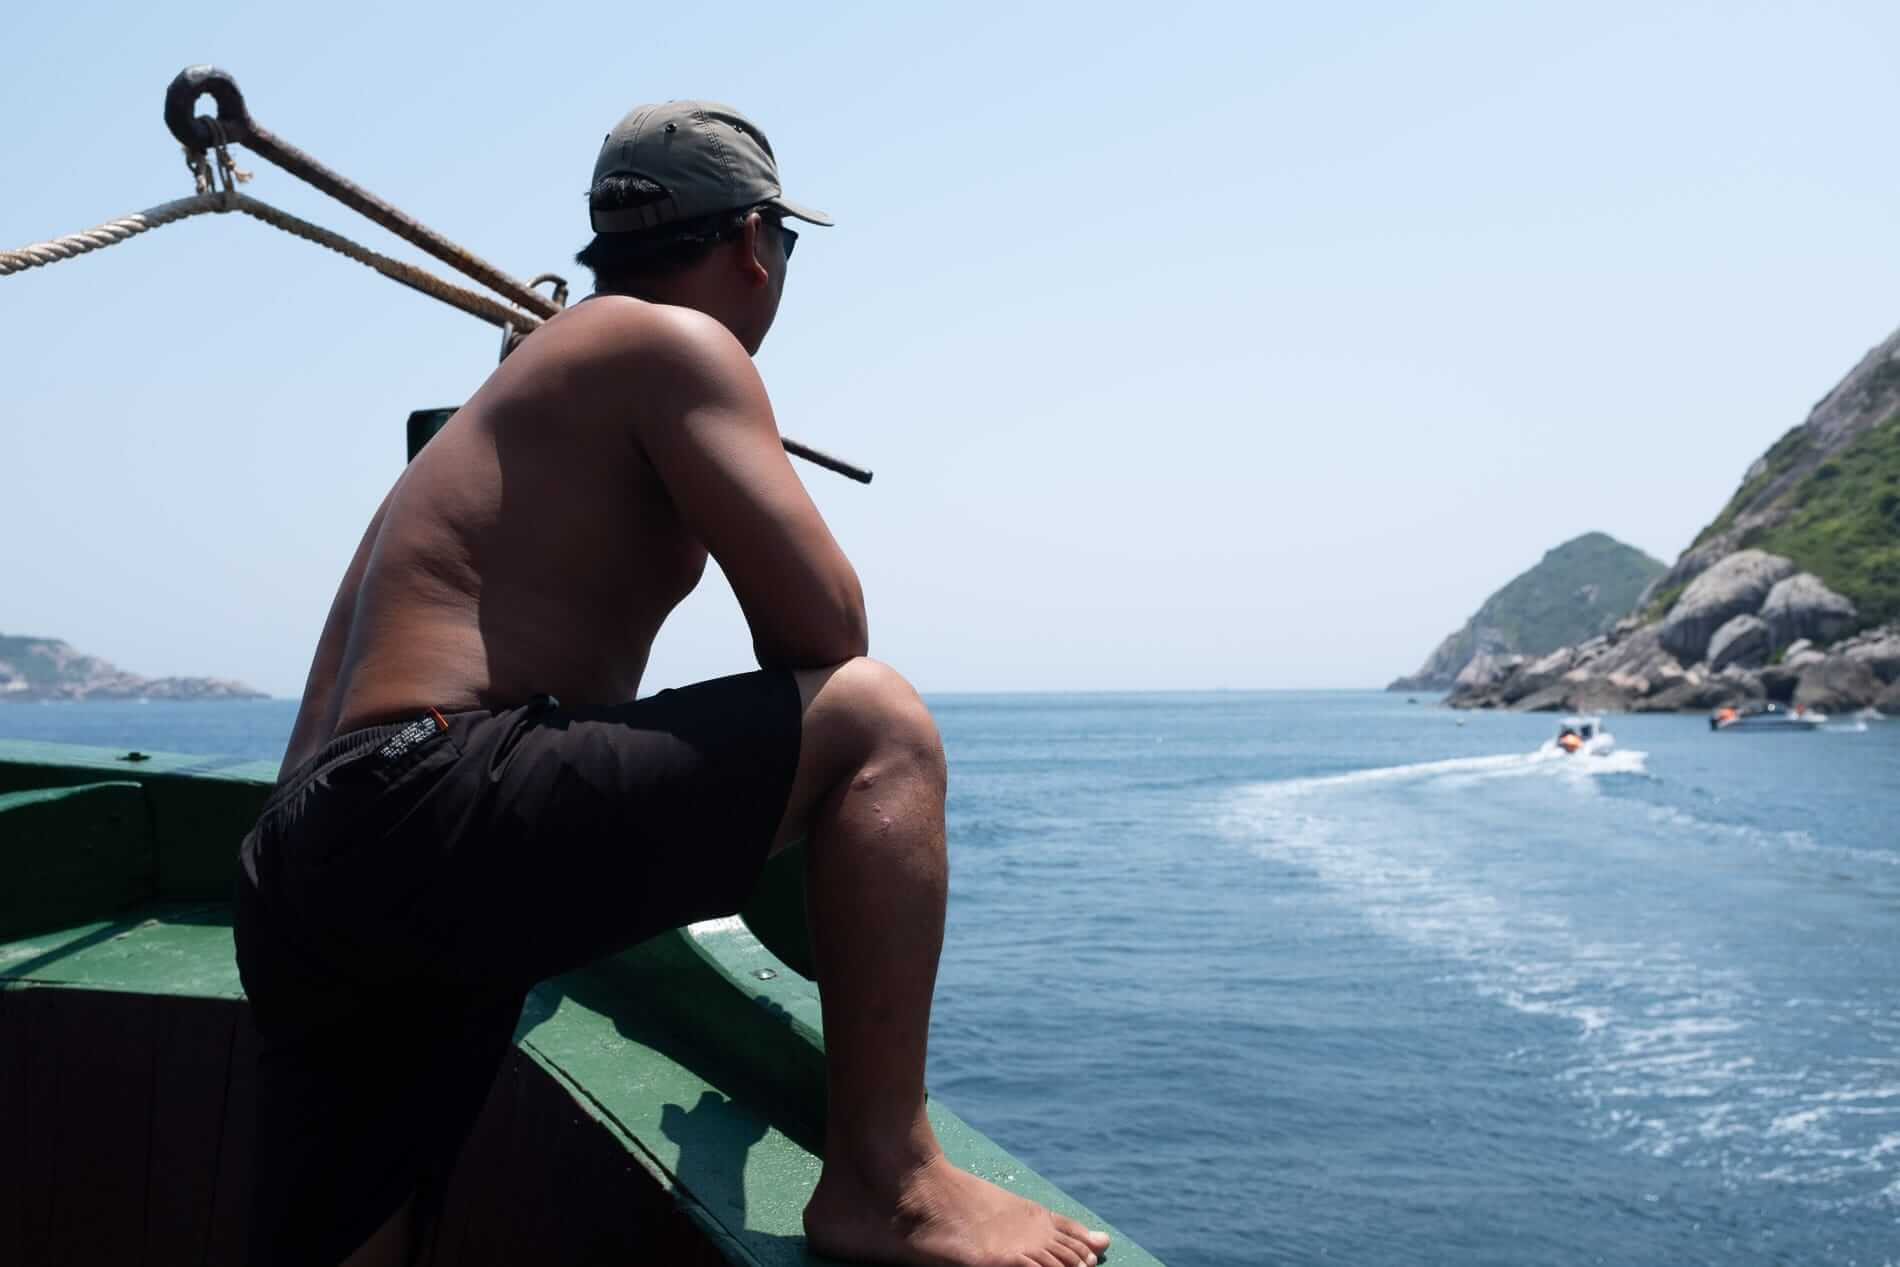 Crew watch over the divers on a trip to scuba dive the Cham Islands